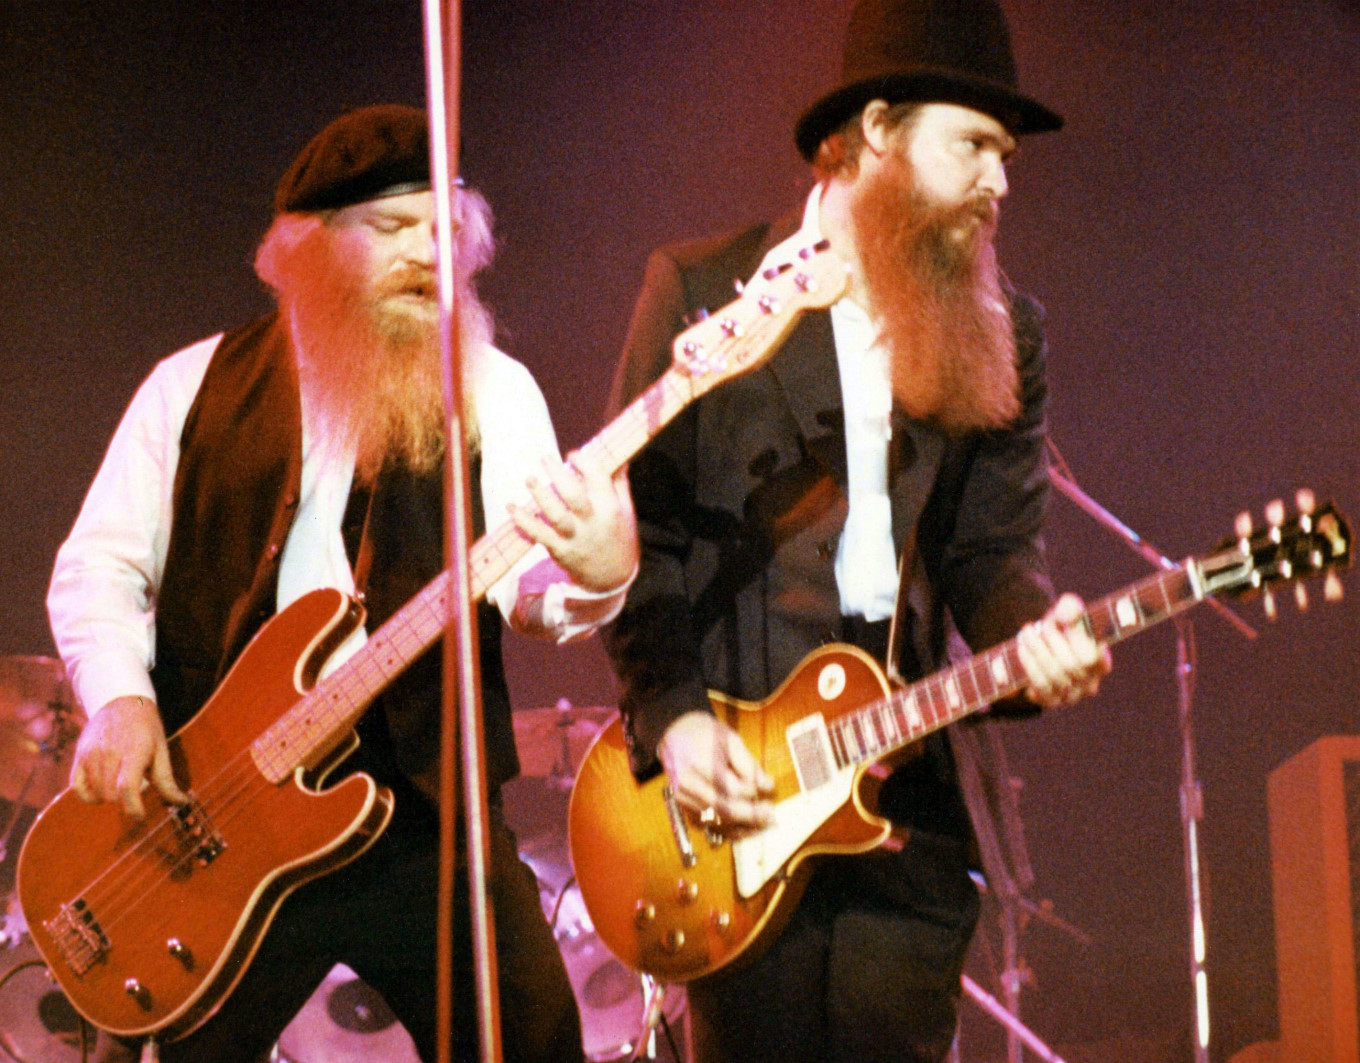 Dusty and Billy of ZZ Top